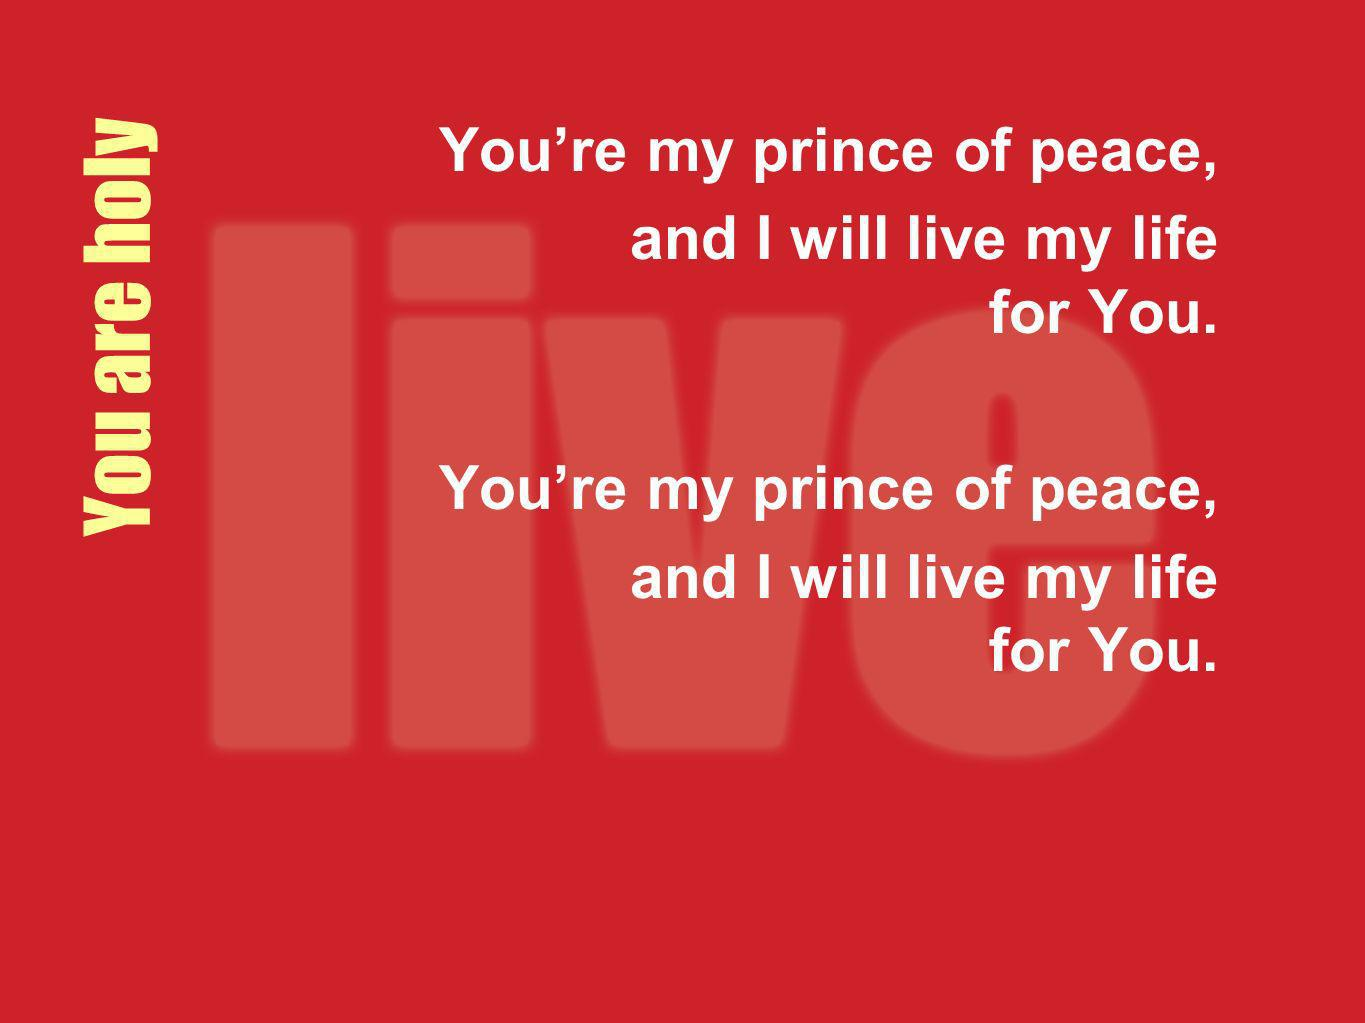 You are holy Youre my prince of peace, and I will live my life for You. Youre my prince of peace, and I will live my life for You.